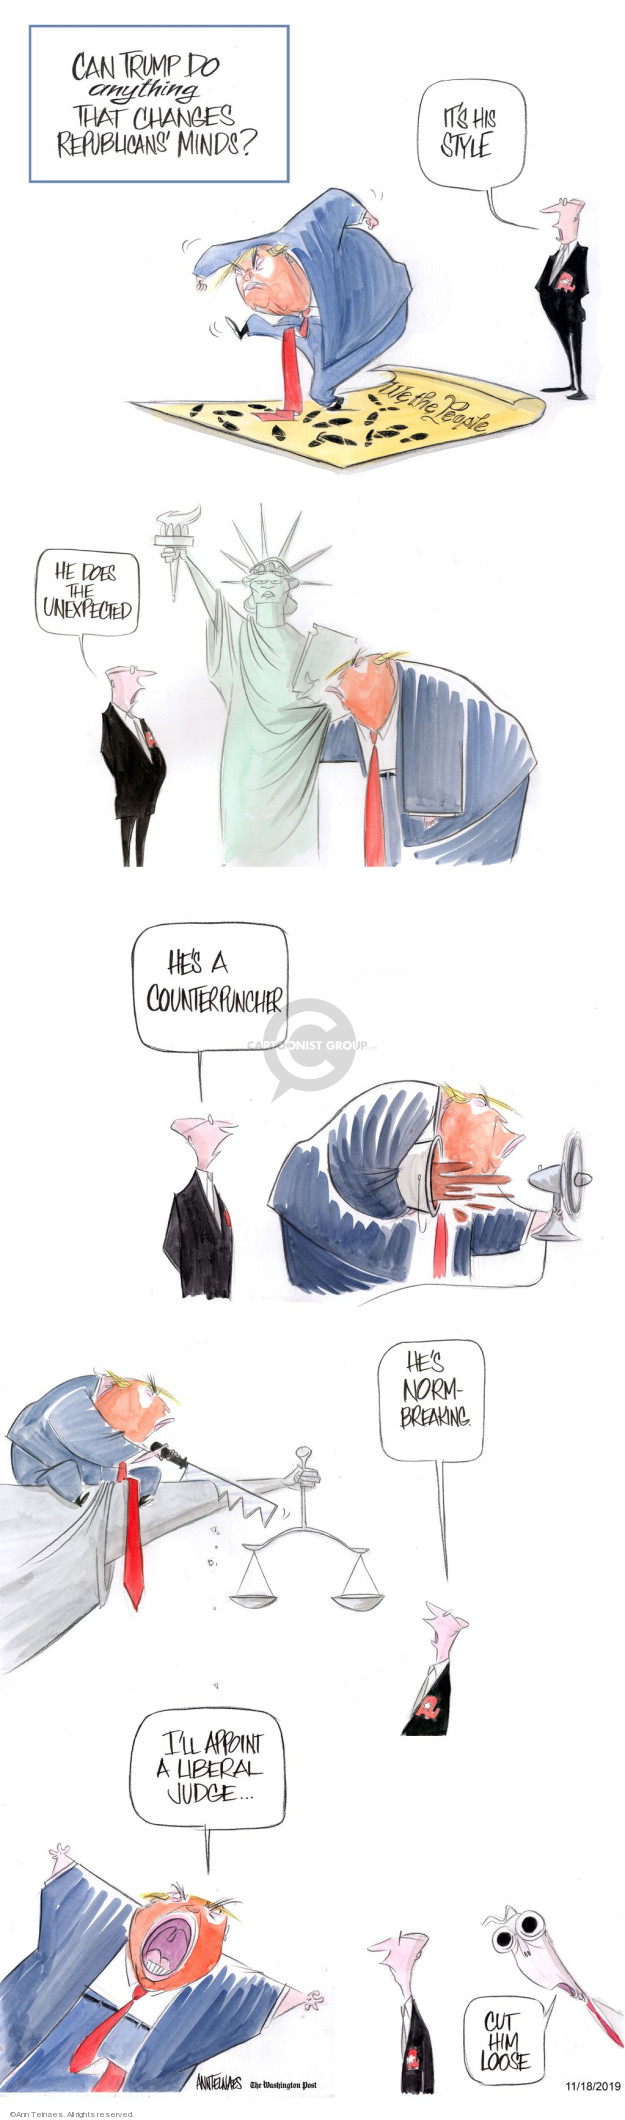 Ann Telnaes  Ann Telnaes' Editorial Cartoons 2019-11-18 American